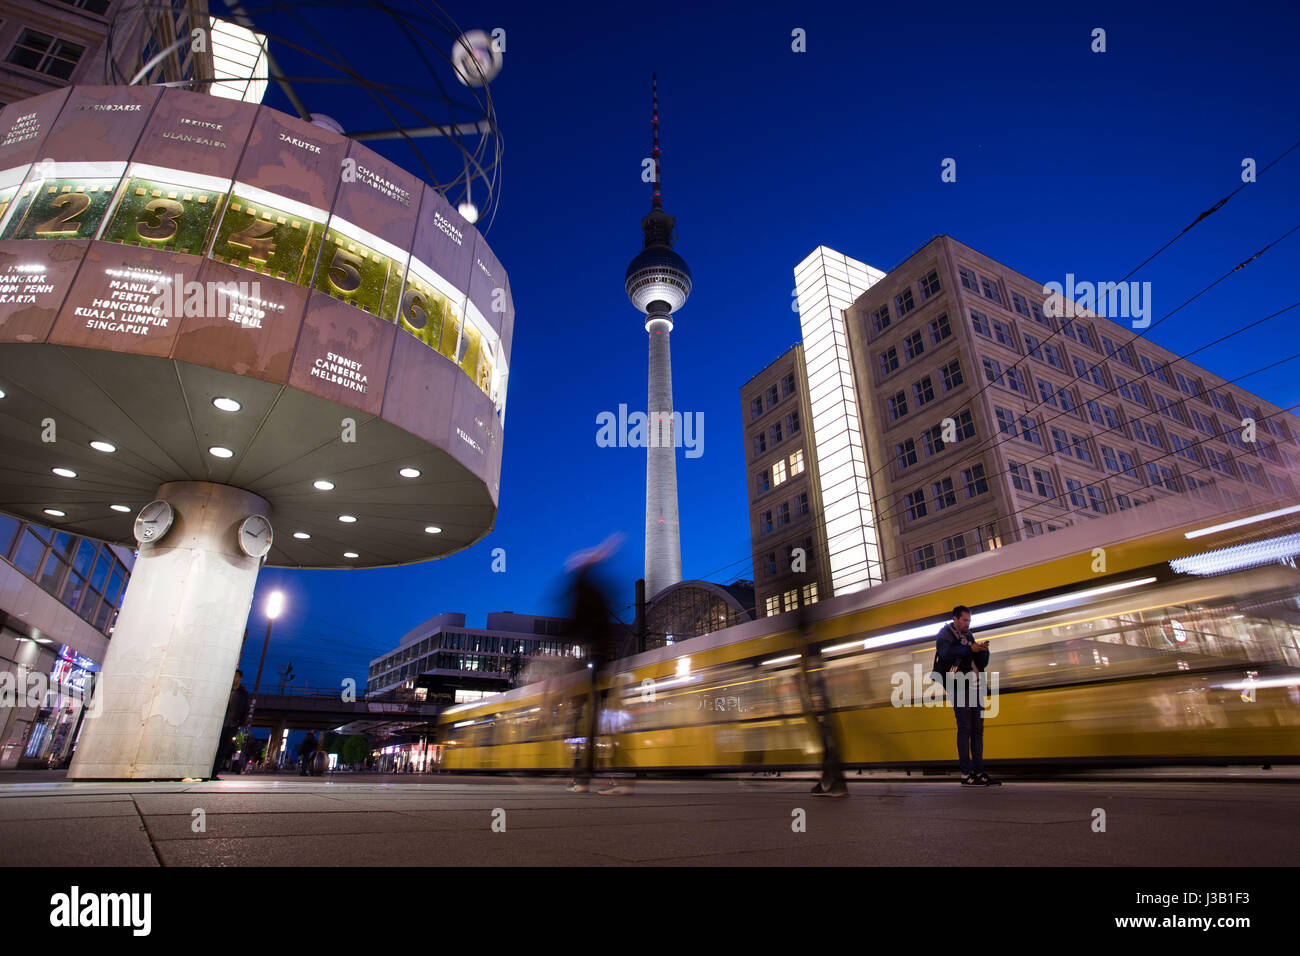 Karta Berlin Alexanderplatz.Alexanderplatz Square Tram World Clock Stock Photos Alexanderplatz